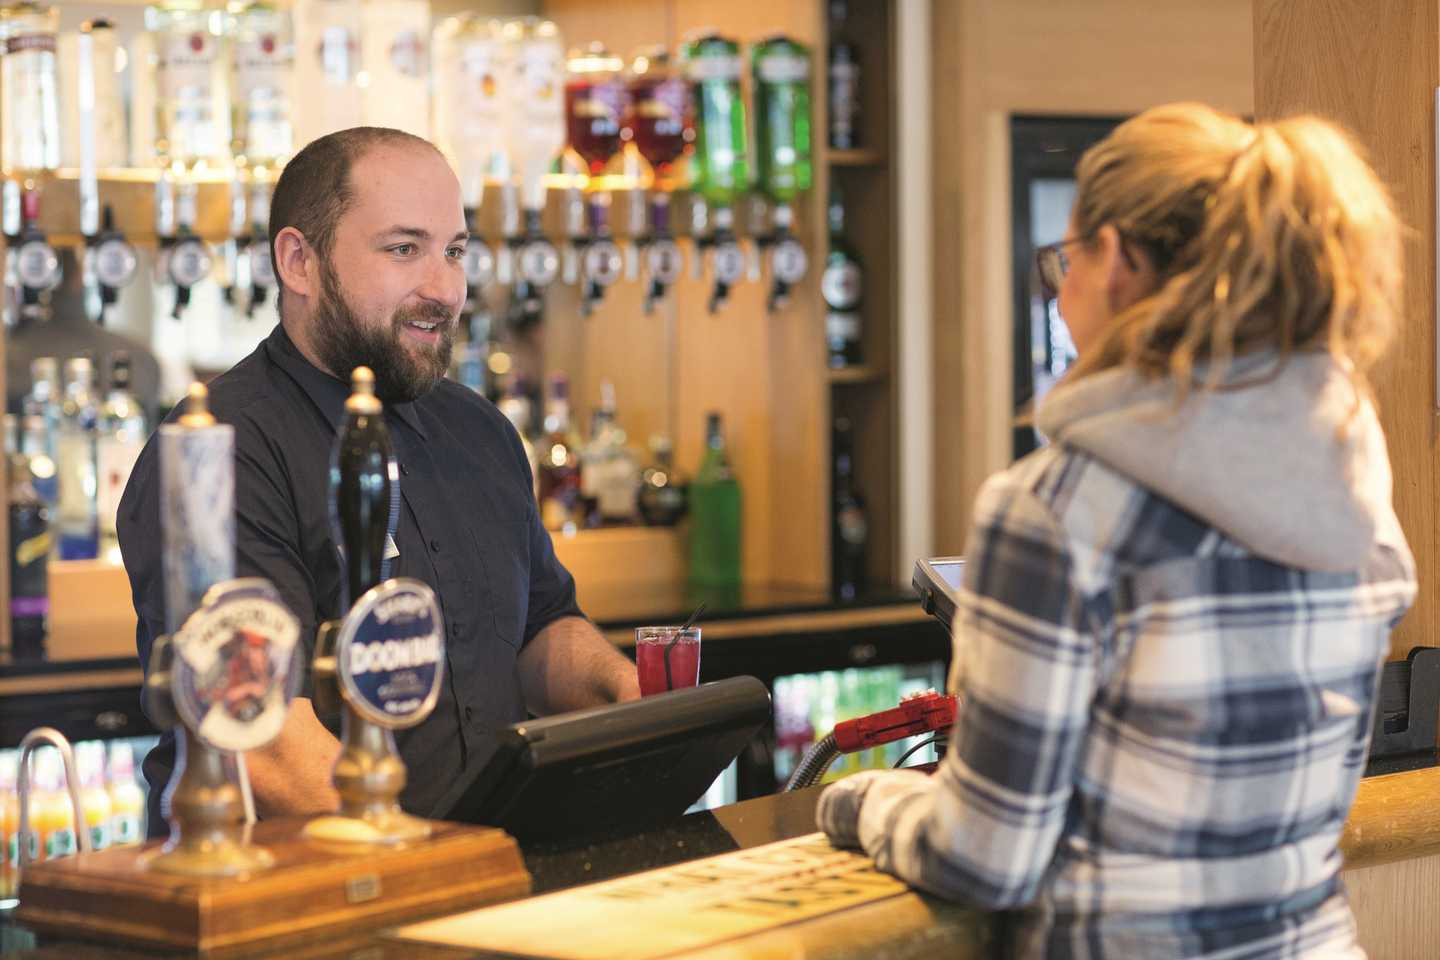 A guests ordering a drink at the bar